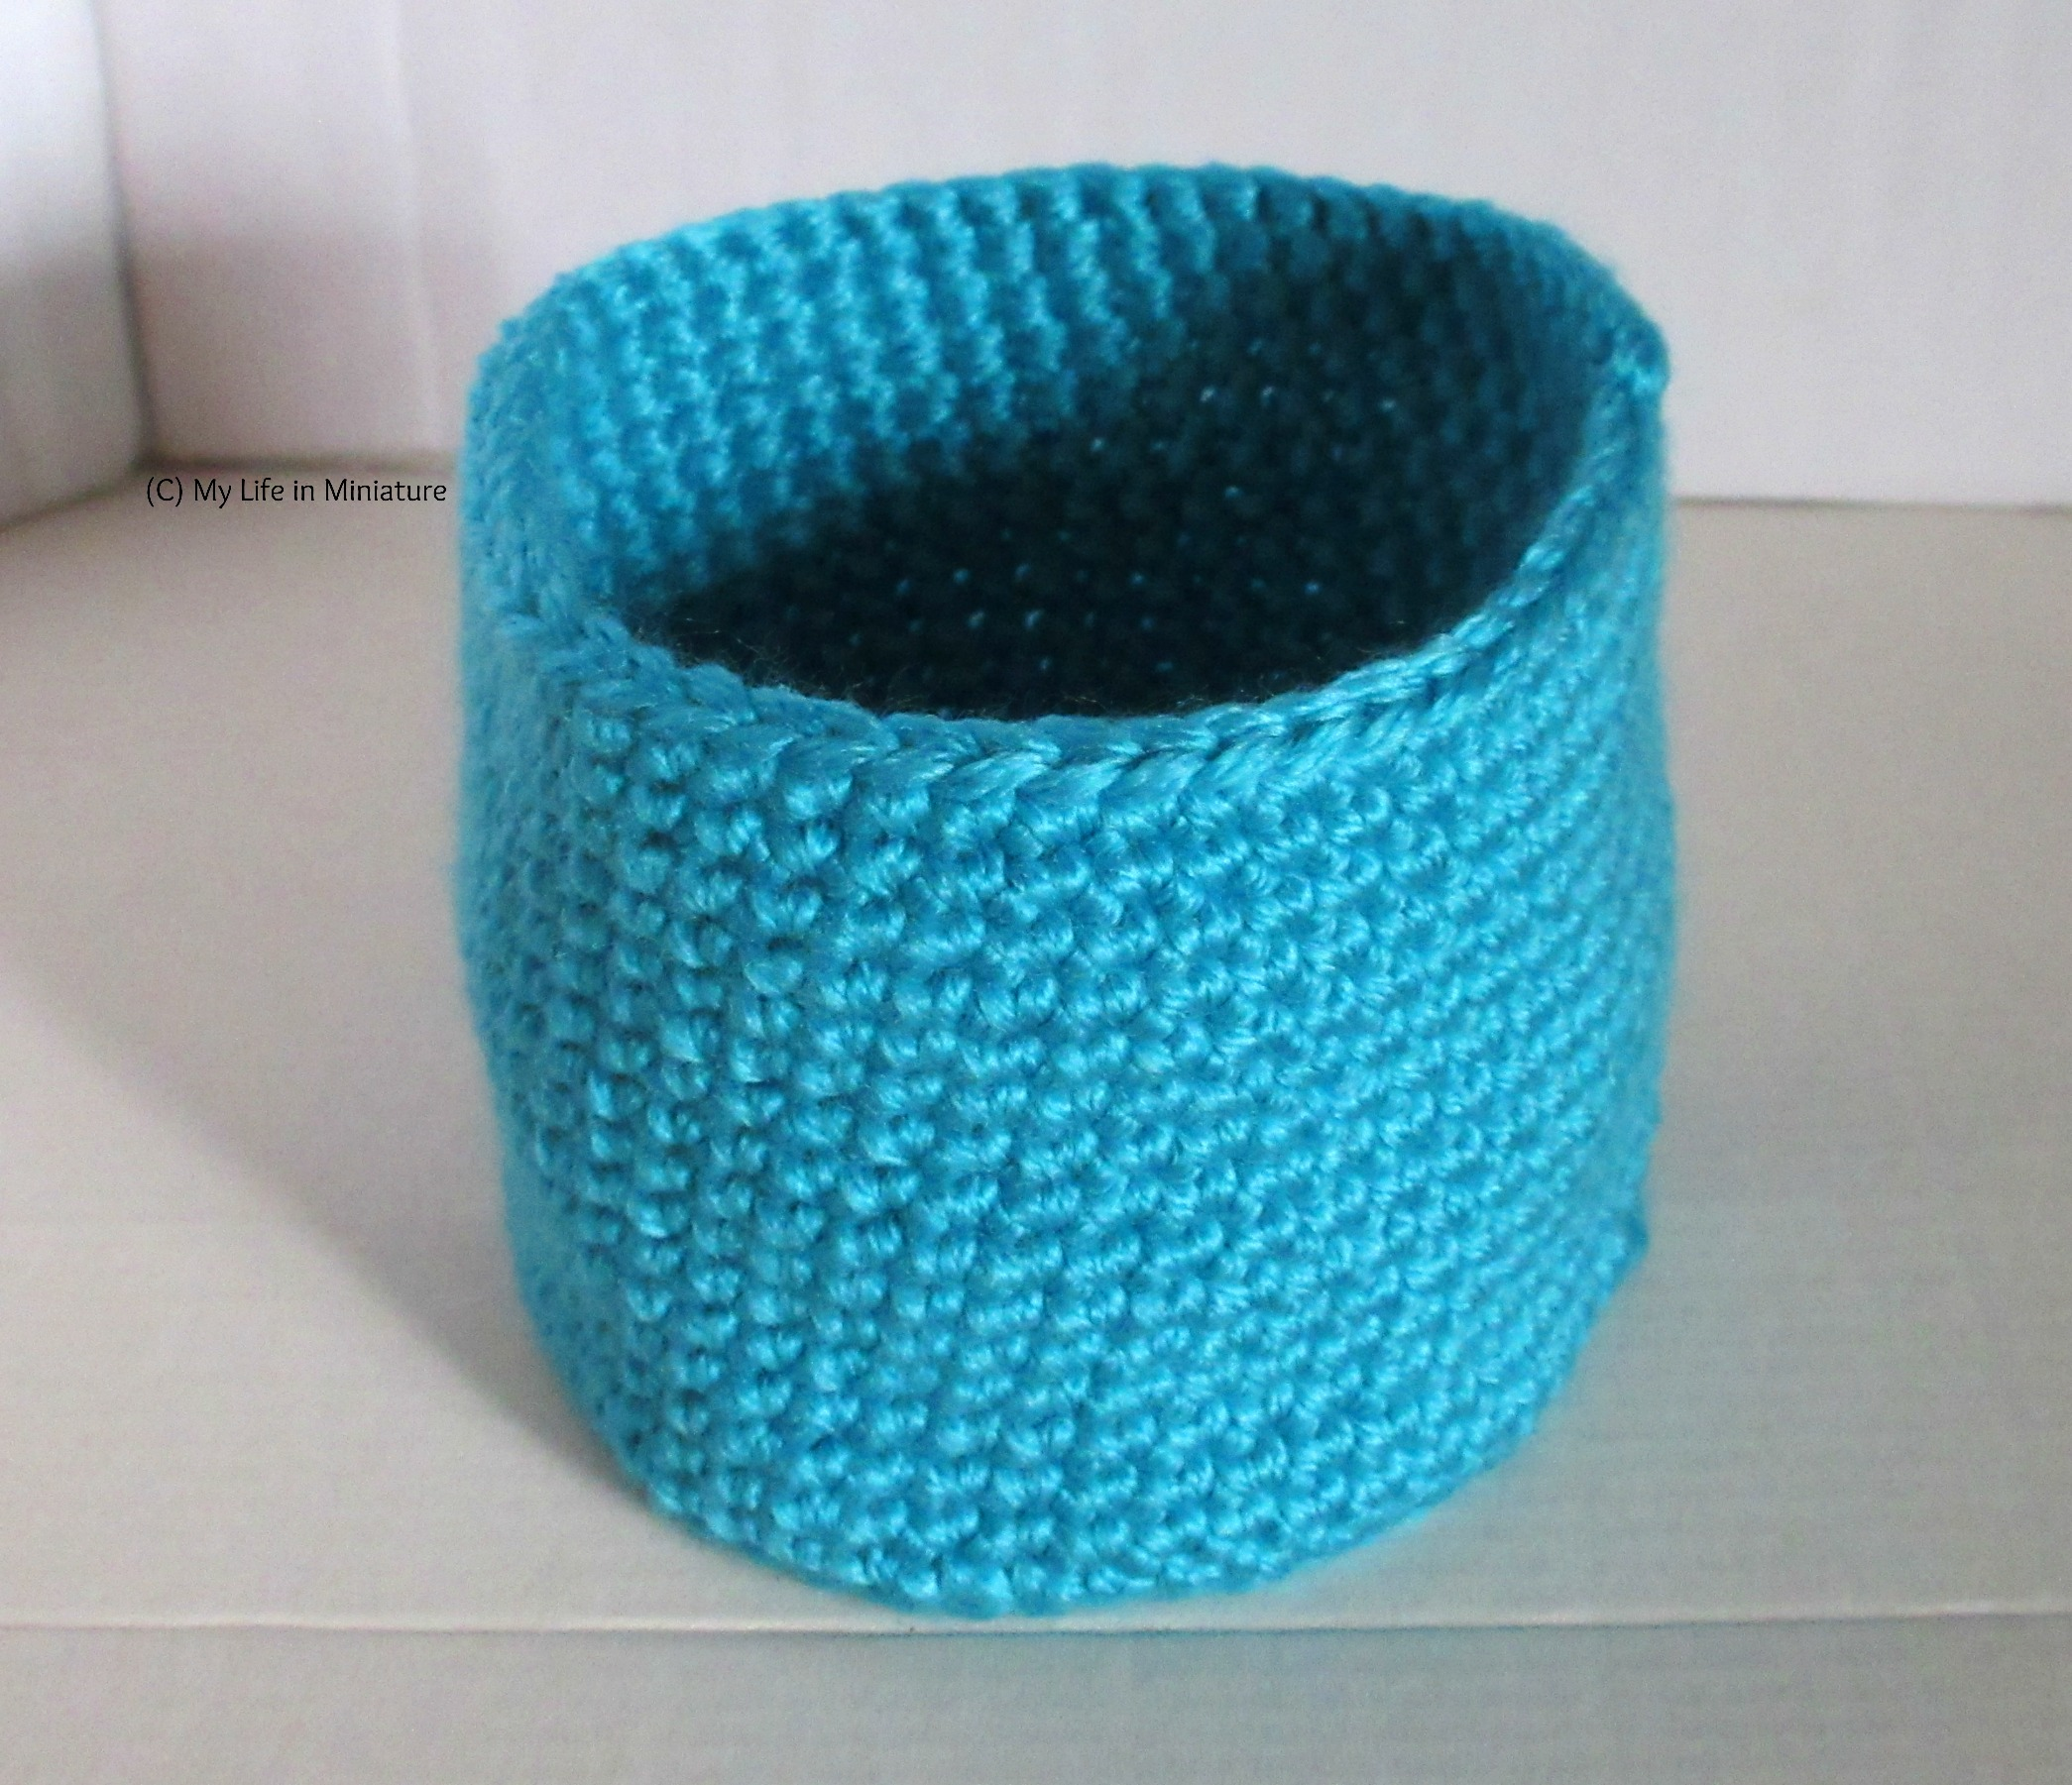 A blue crocheted nest sits against a white background.